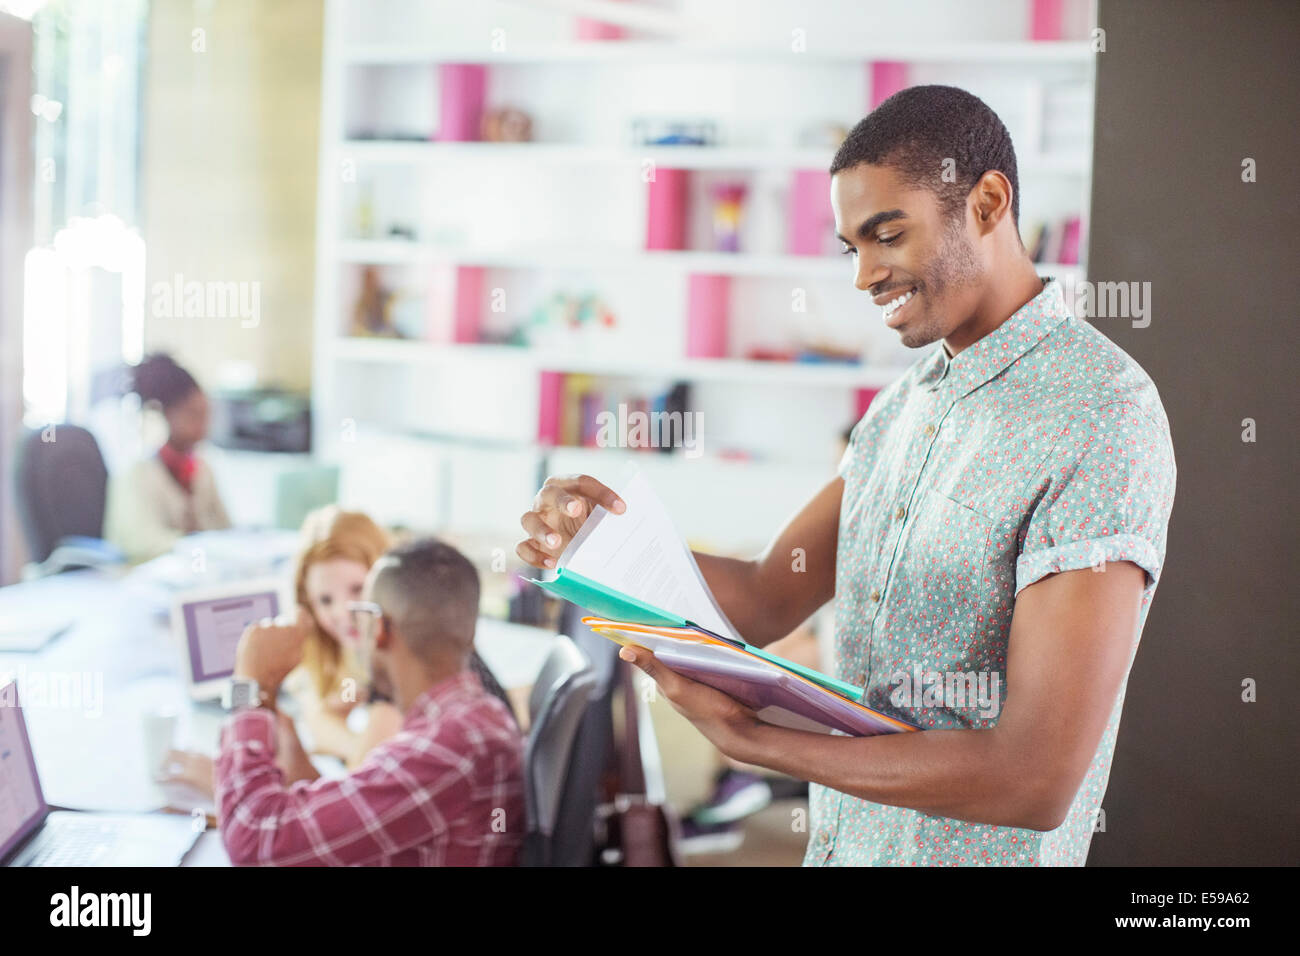 Man reading folders in office - Stock Image